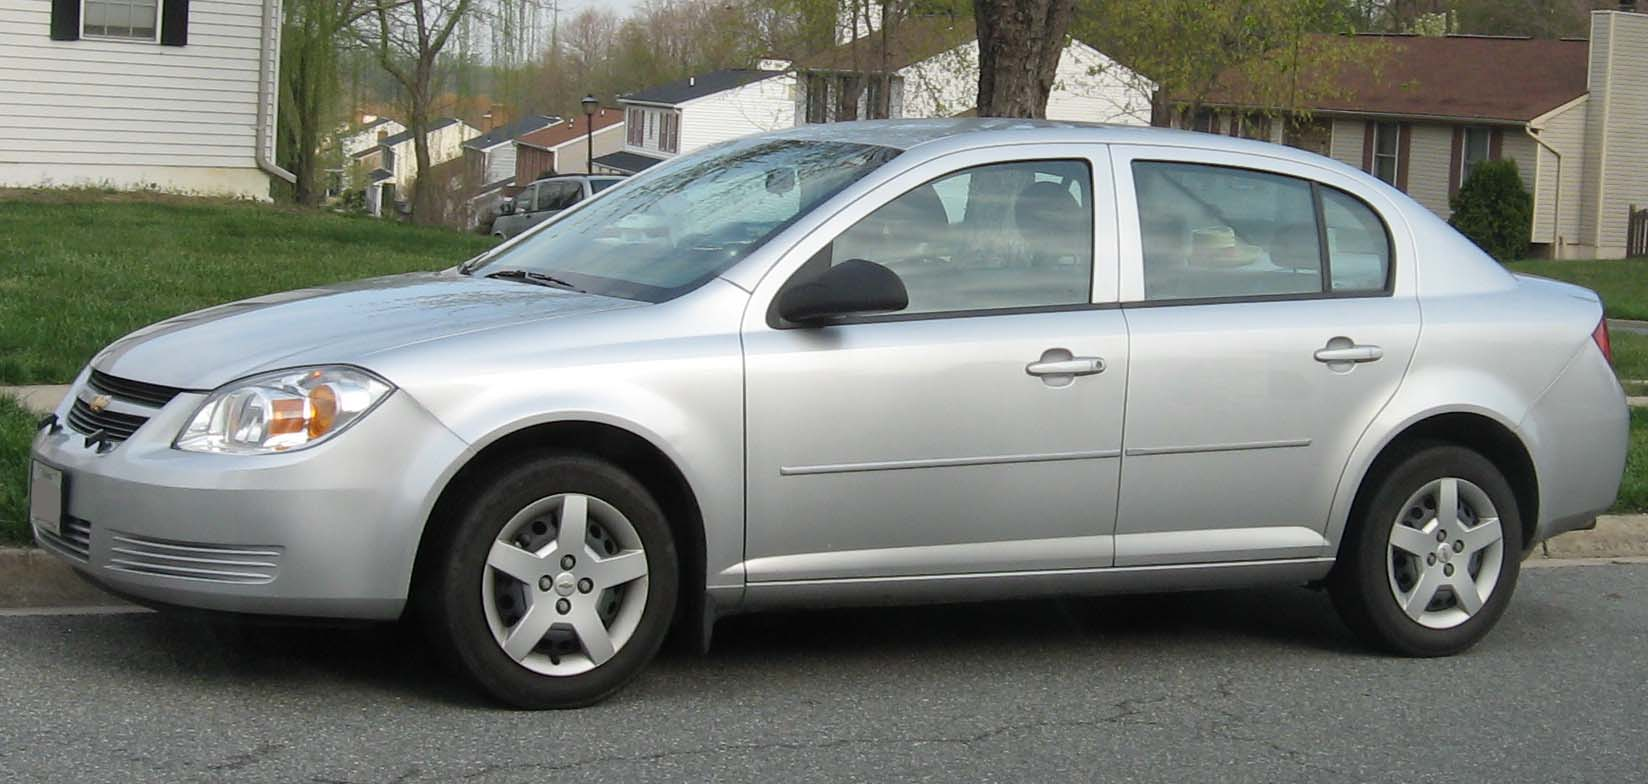 file chevrolet cobalt wikimedia commons. Cars Review. Best American Auto & Cars Review